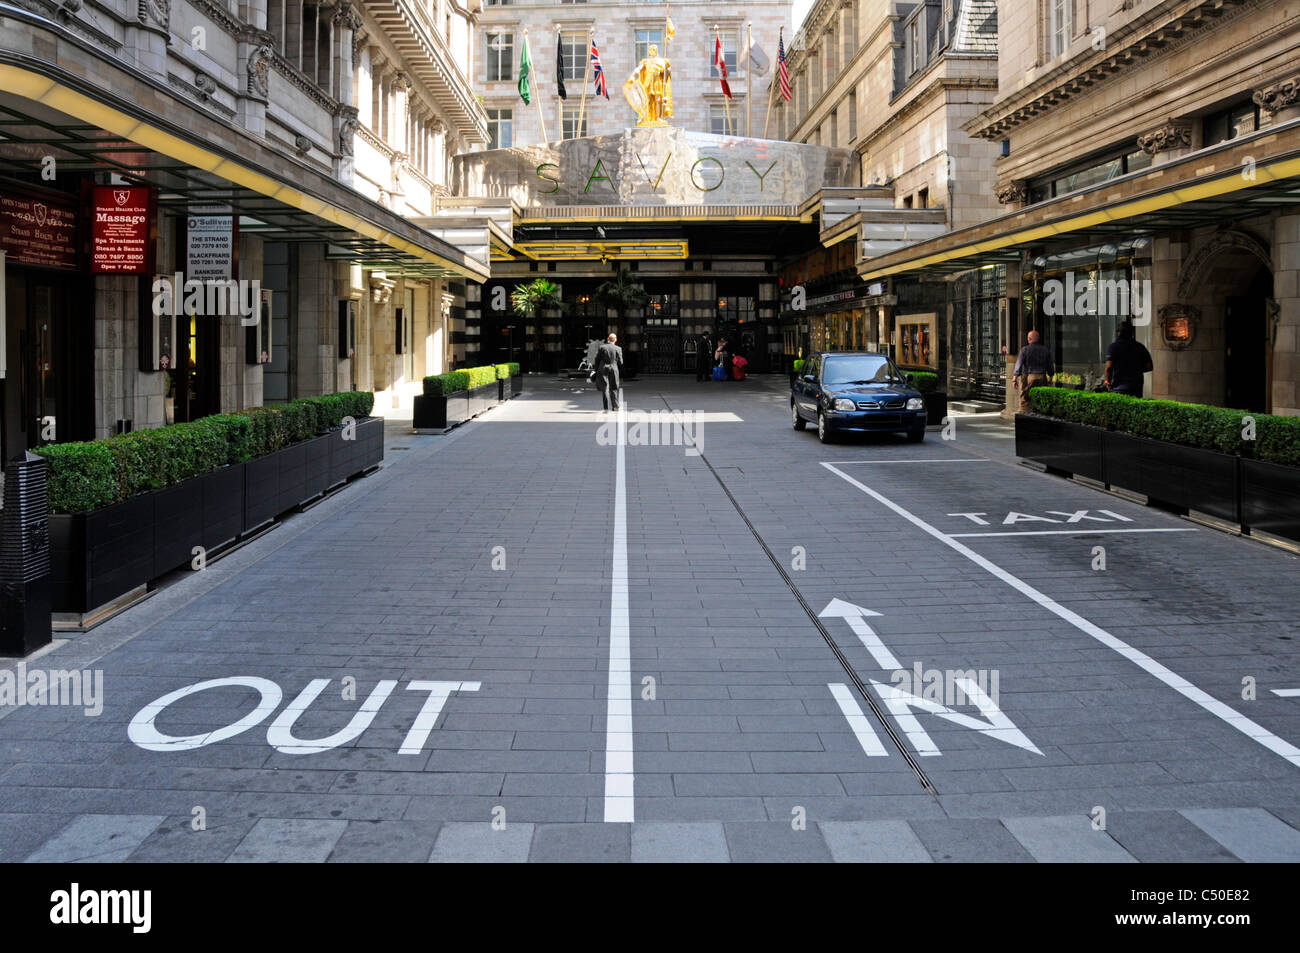 London street scene Savoy Hotel unusual public entrance road driving in on right hand side legal & permitted - Stock Image